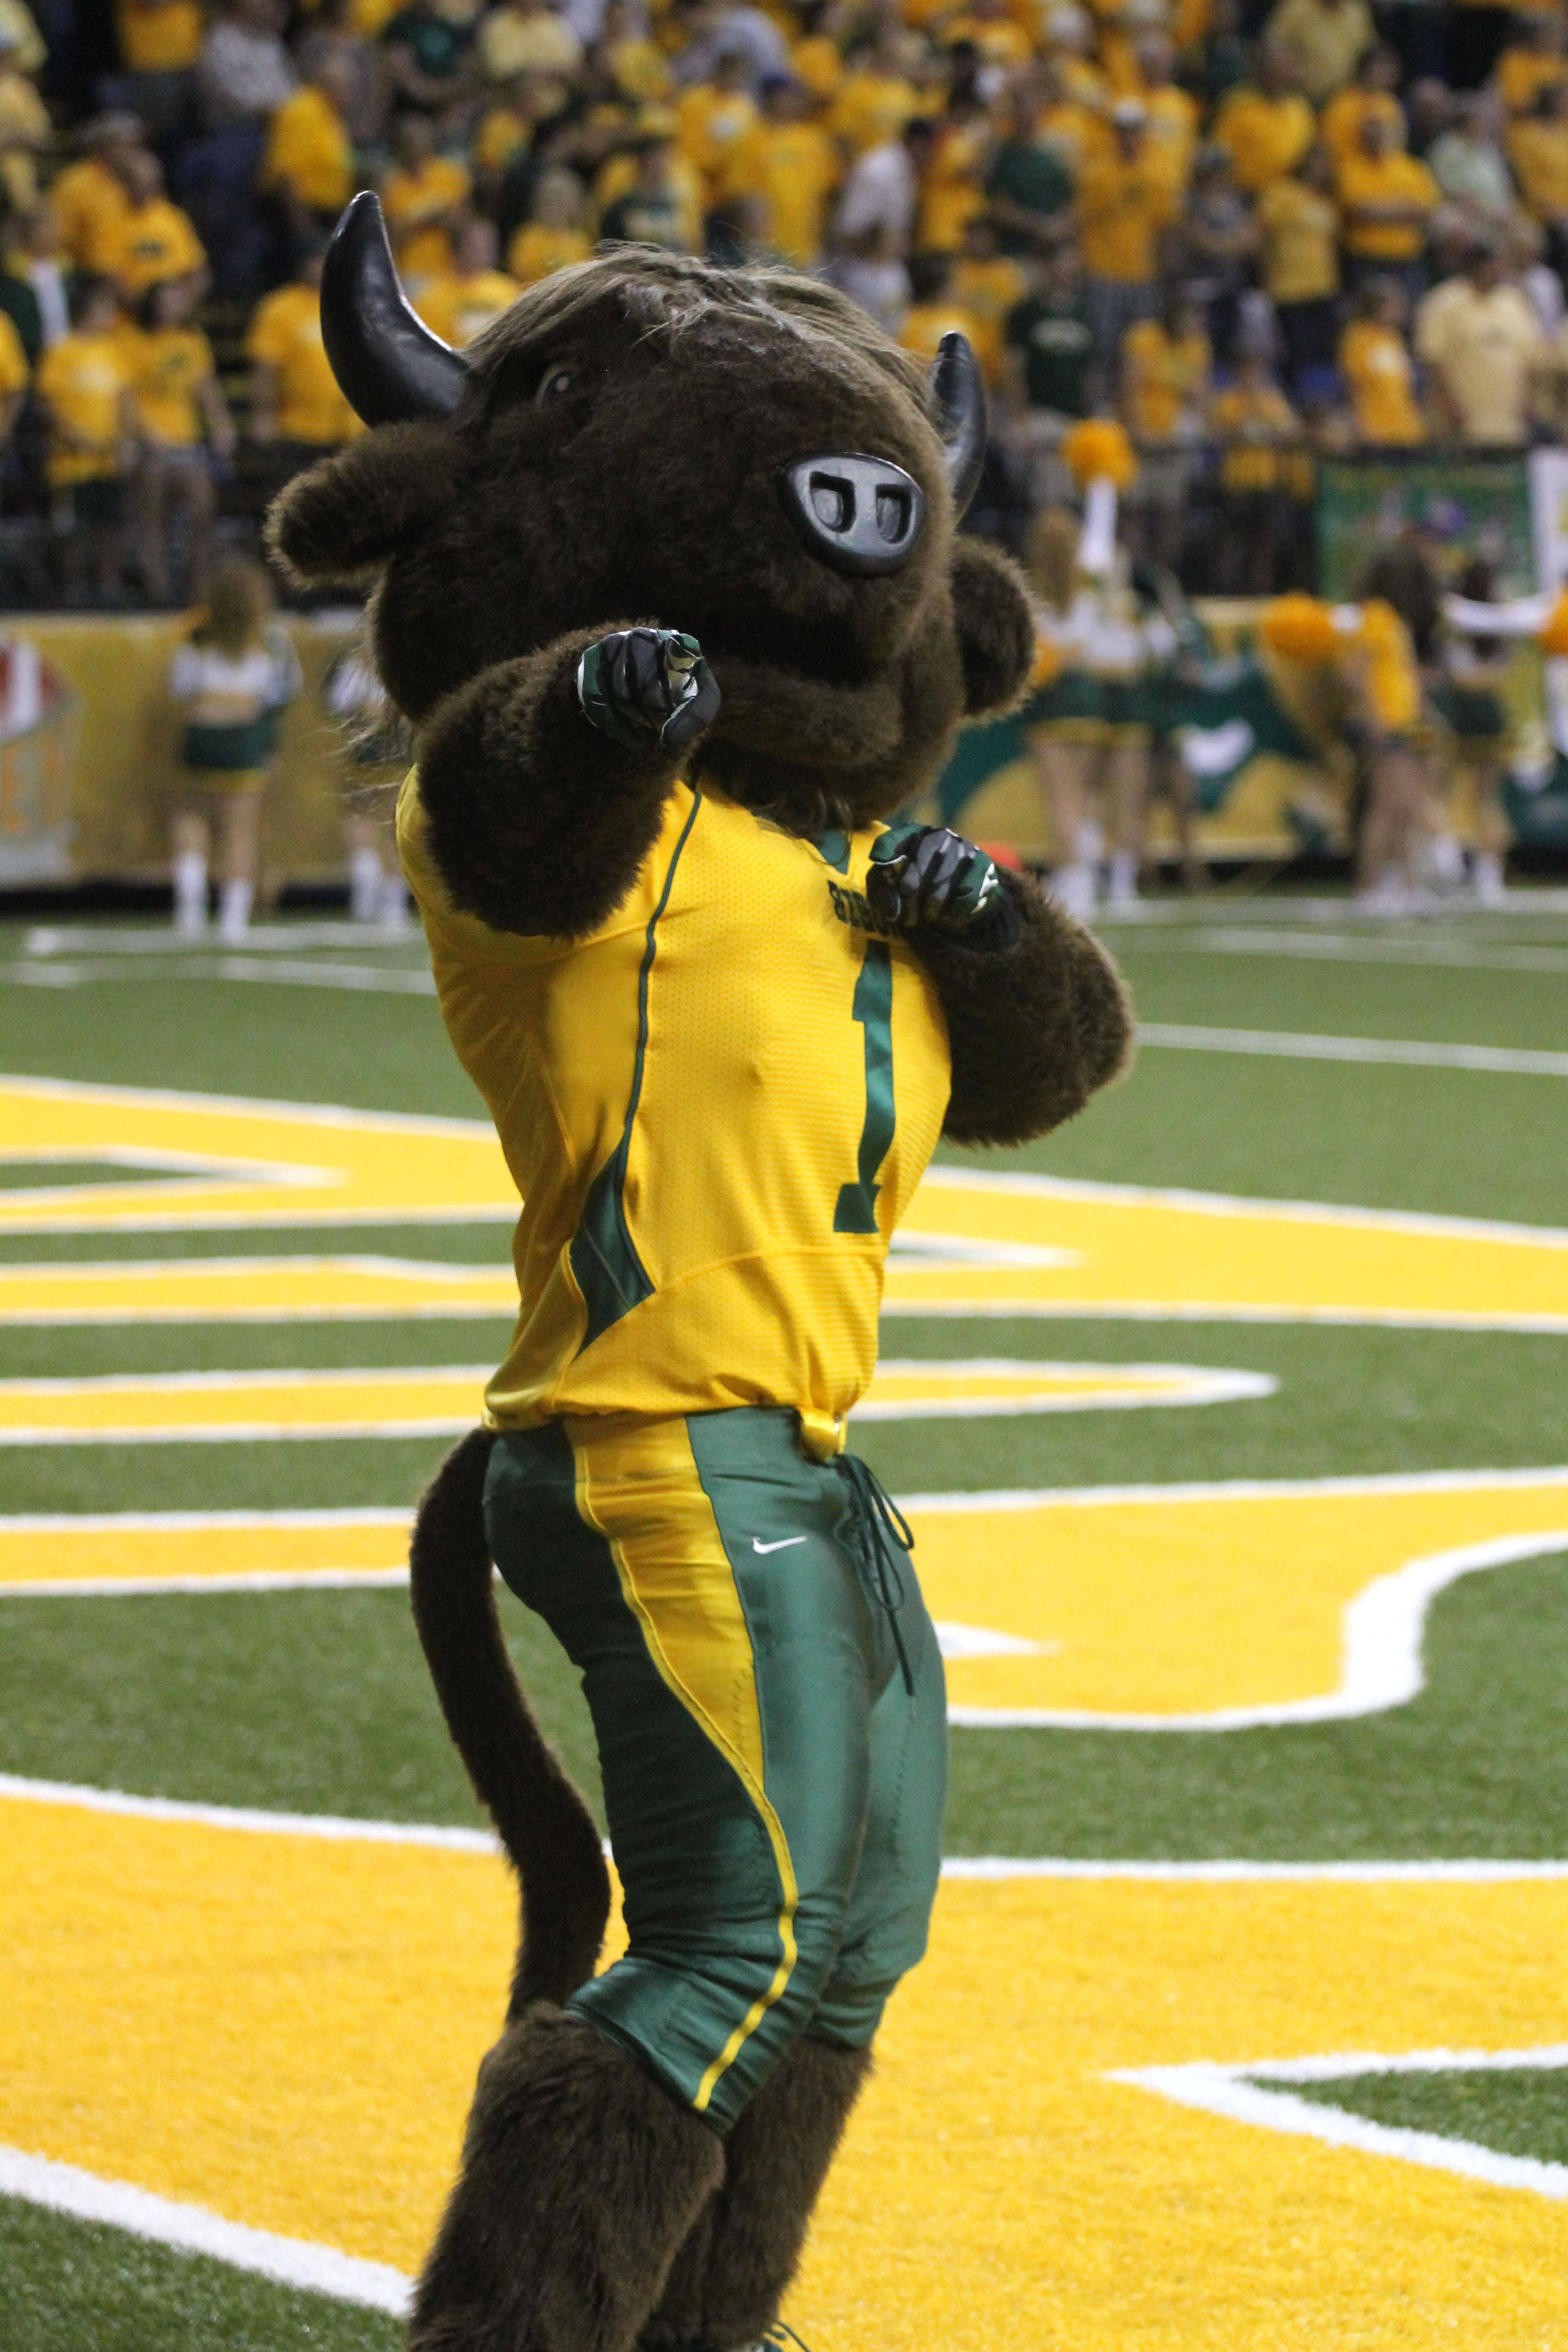 Always reppin the green and the gold ndsu bison